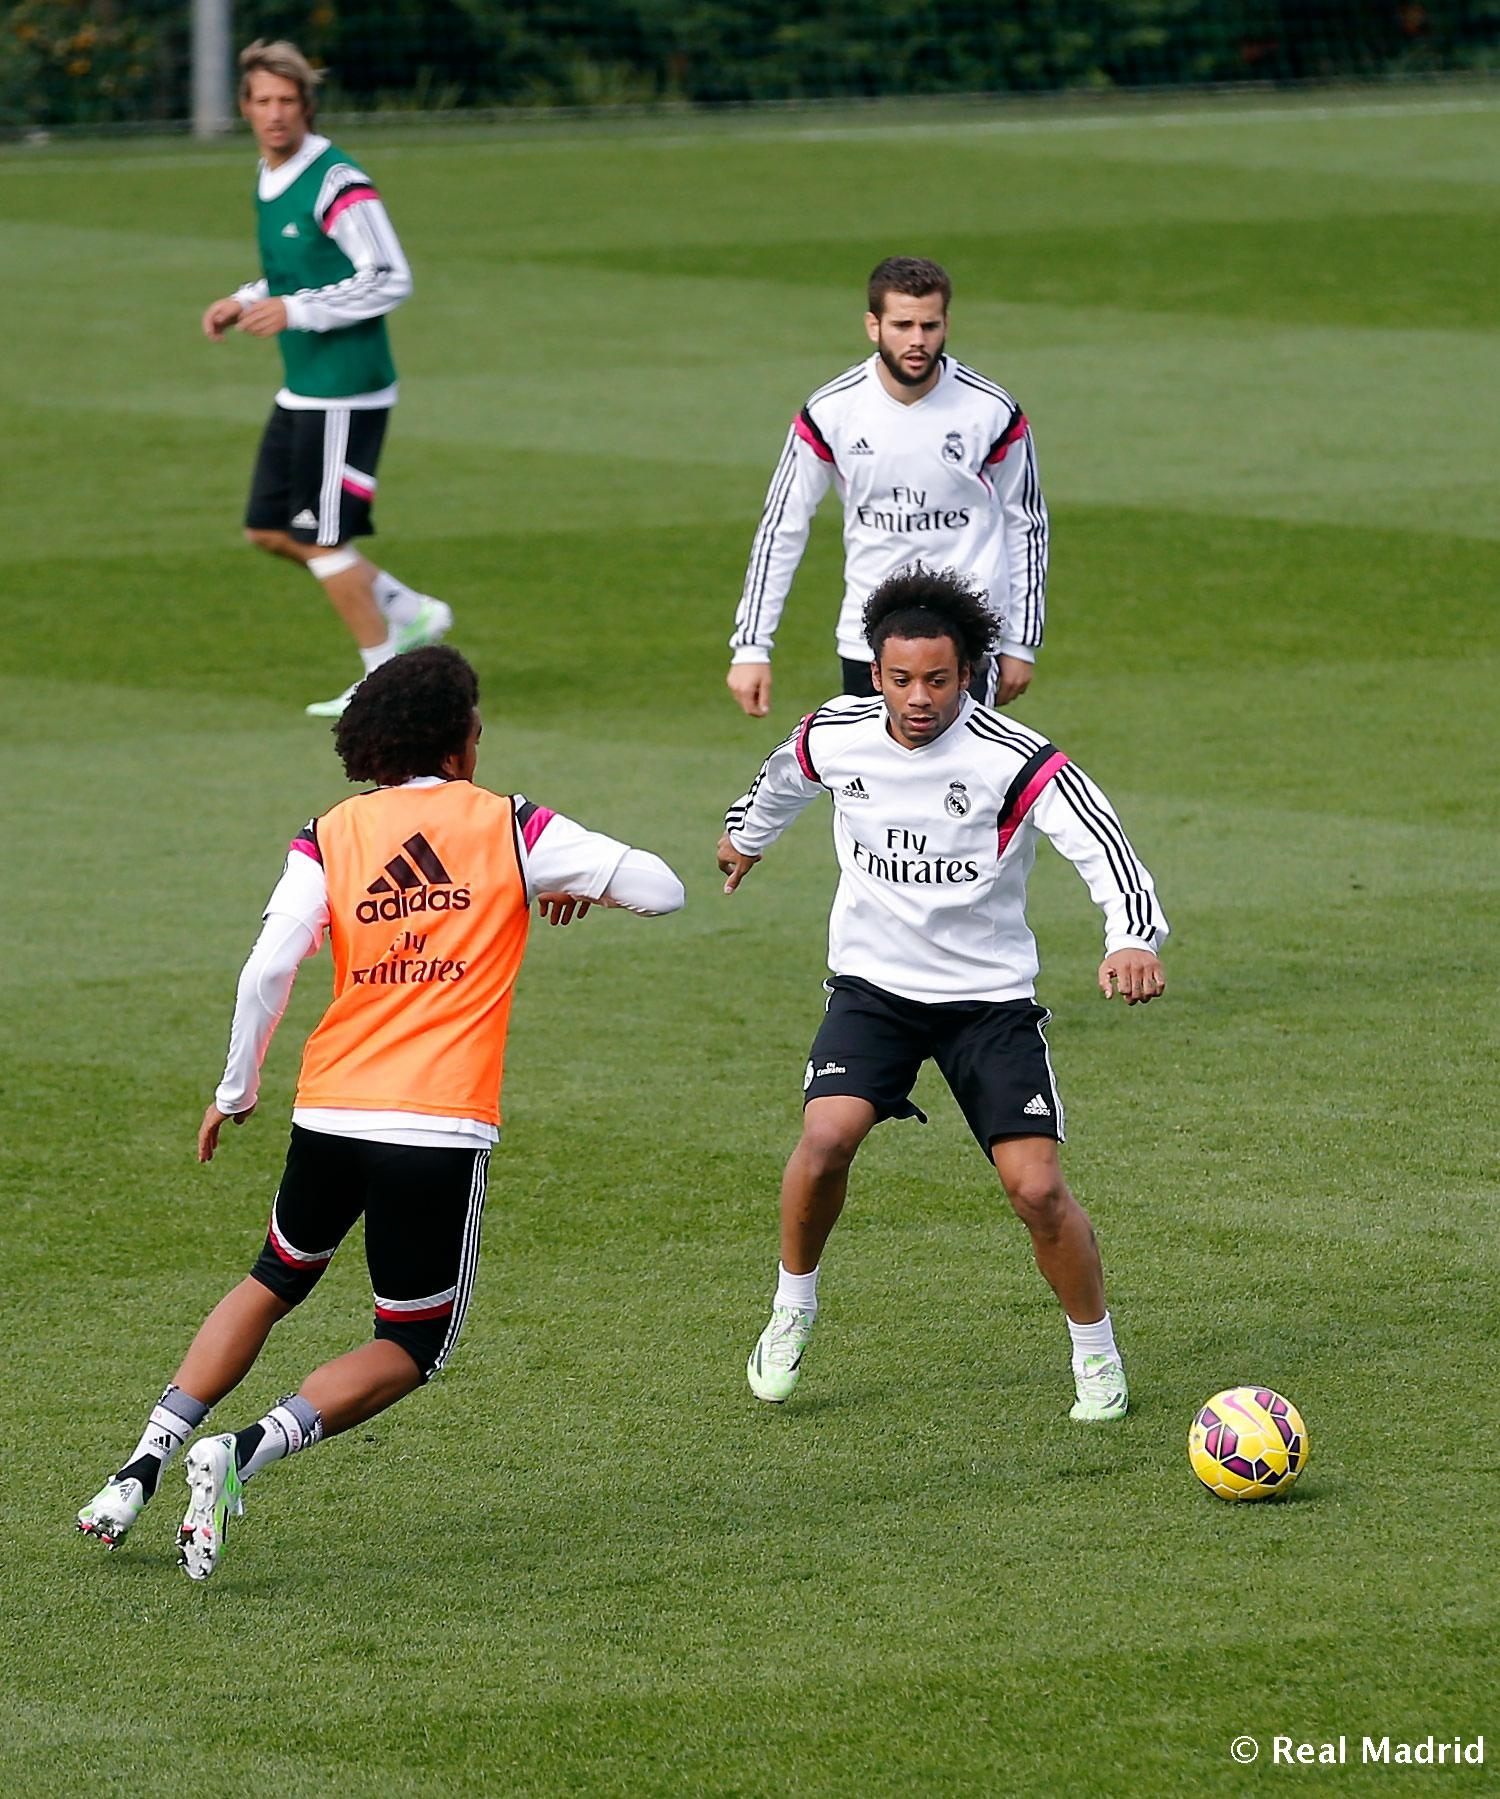 Real Madrid - Entrenamiento del Real Madrid - 12-11-2014